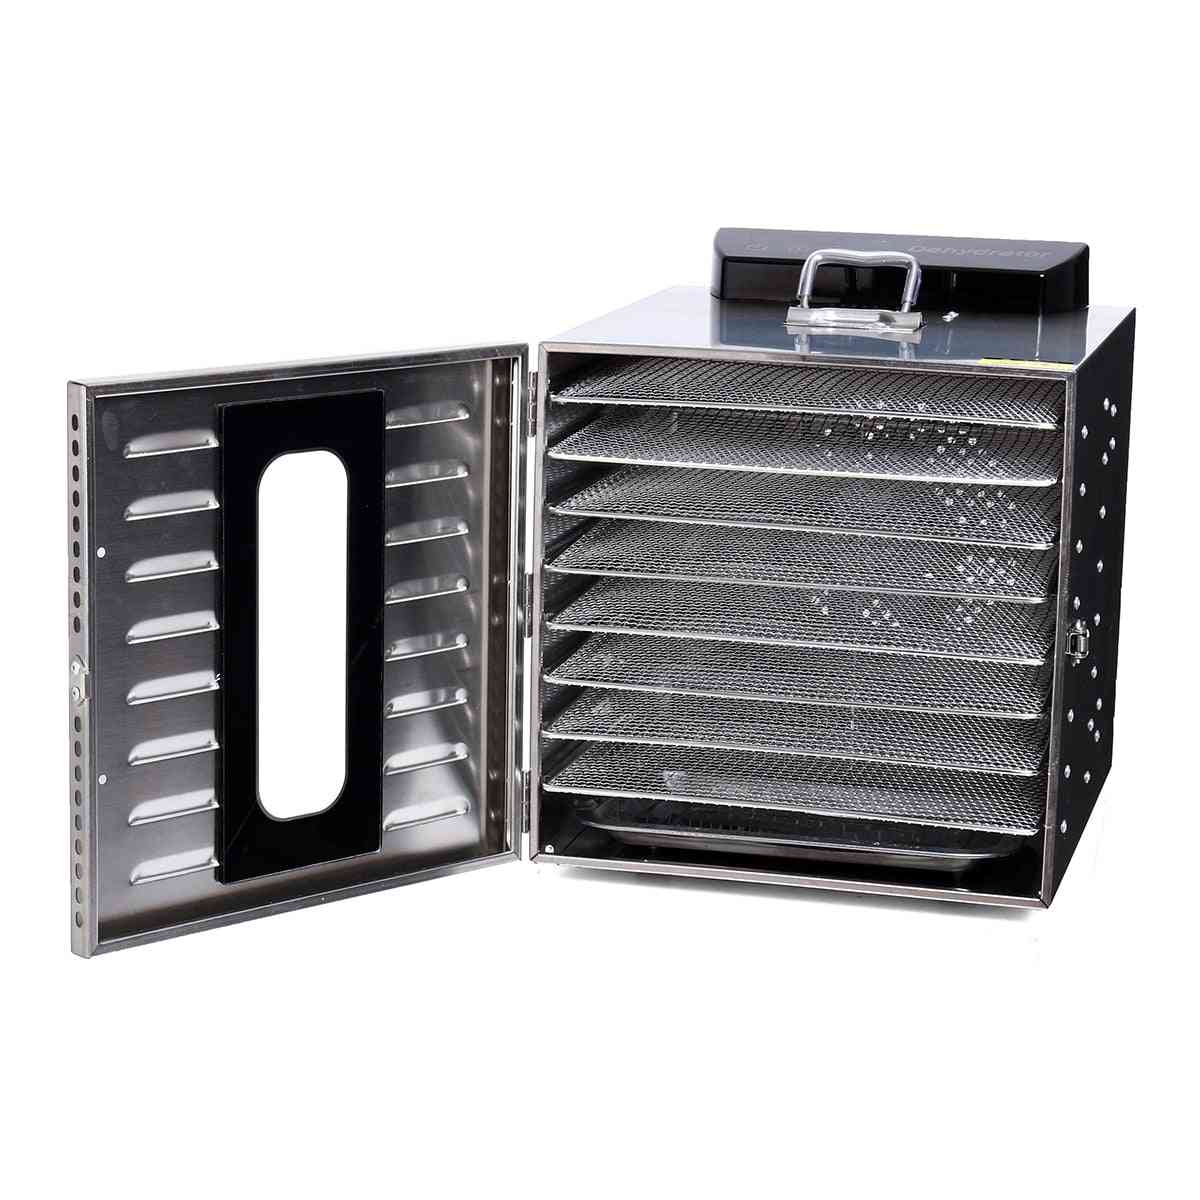 Stainless Steel Food Fruit, Vegetable & Meat Dryer Electric Dehydrator